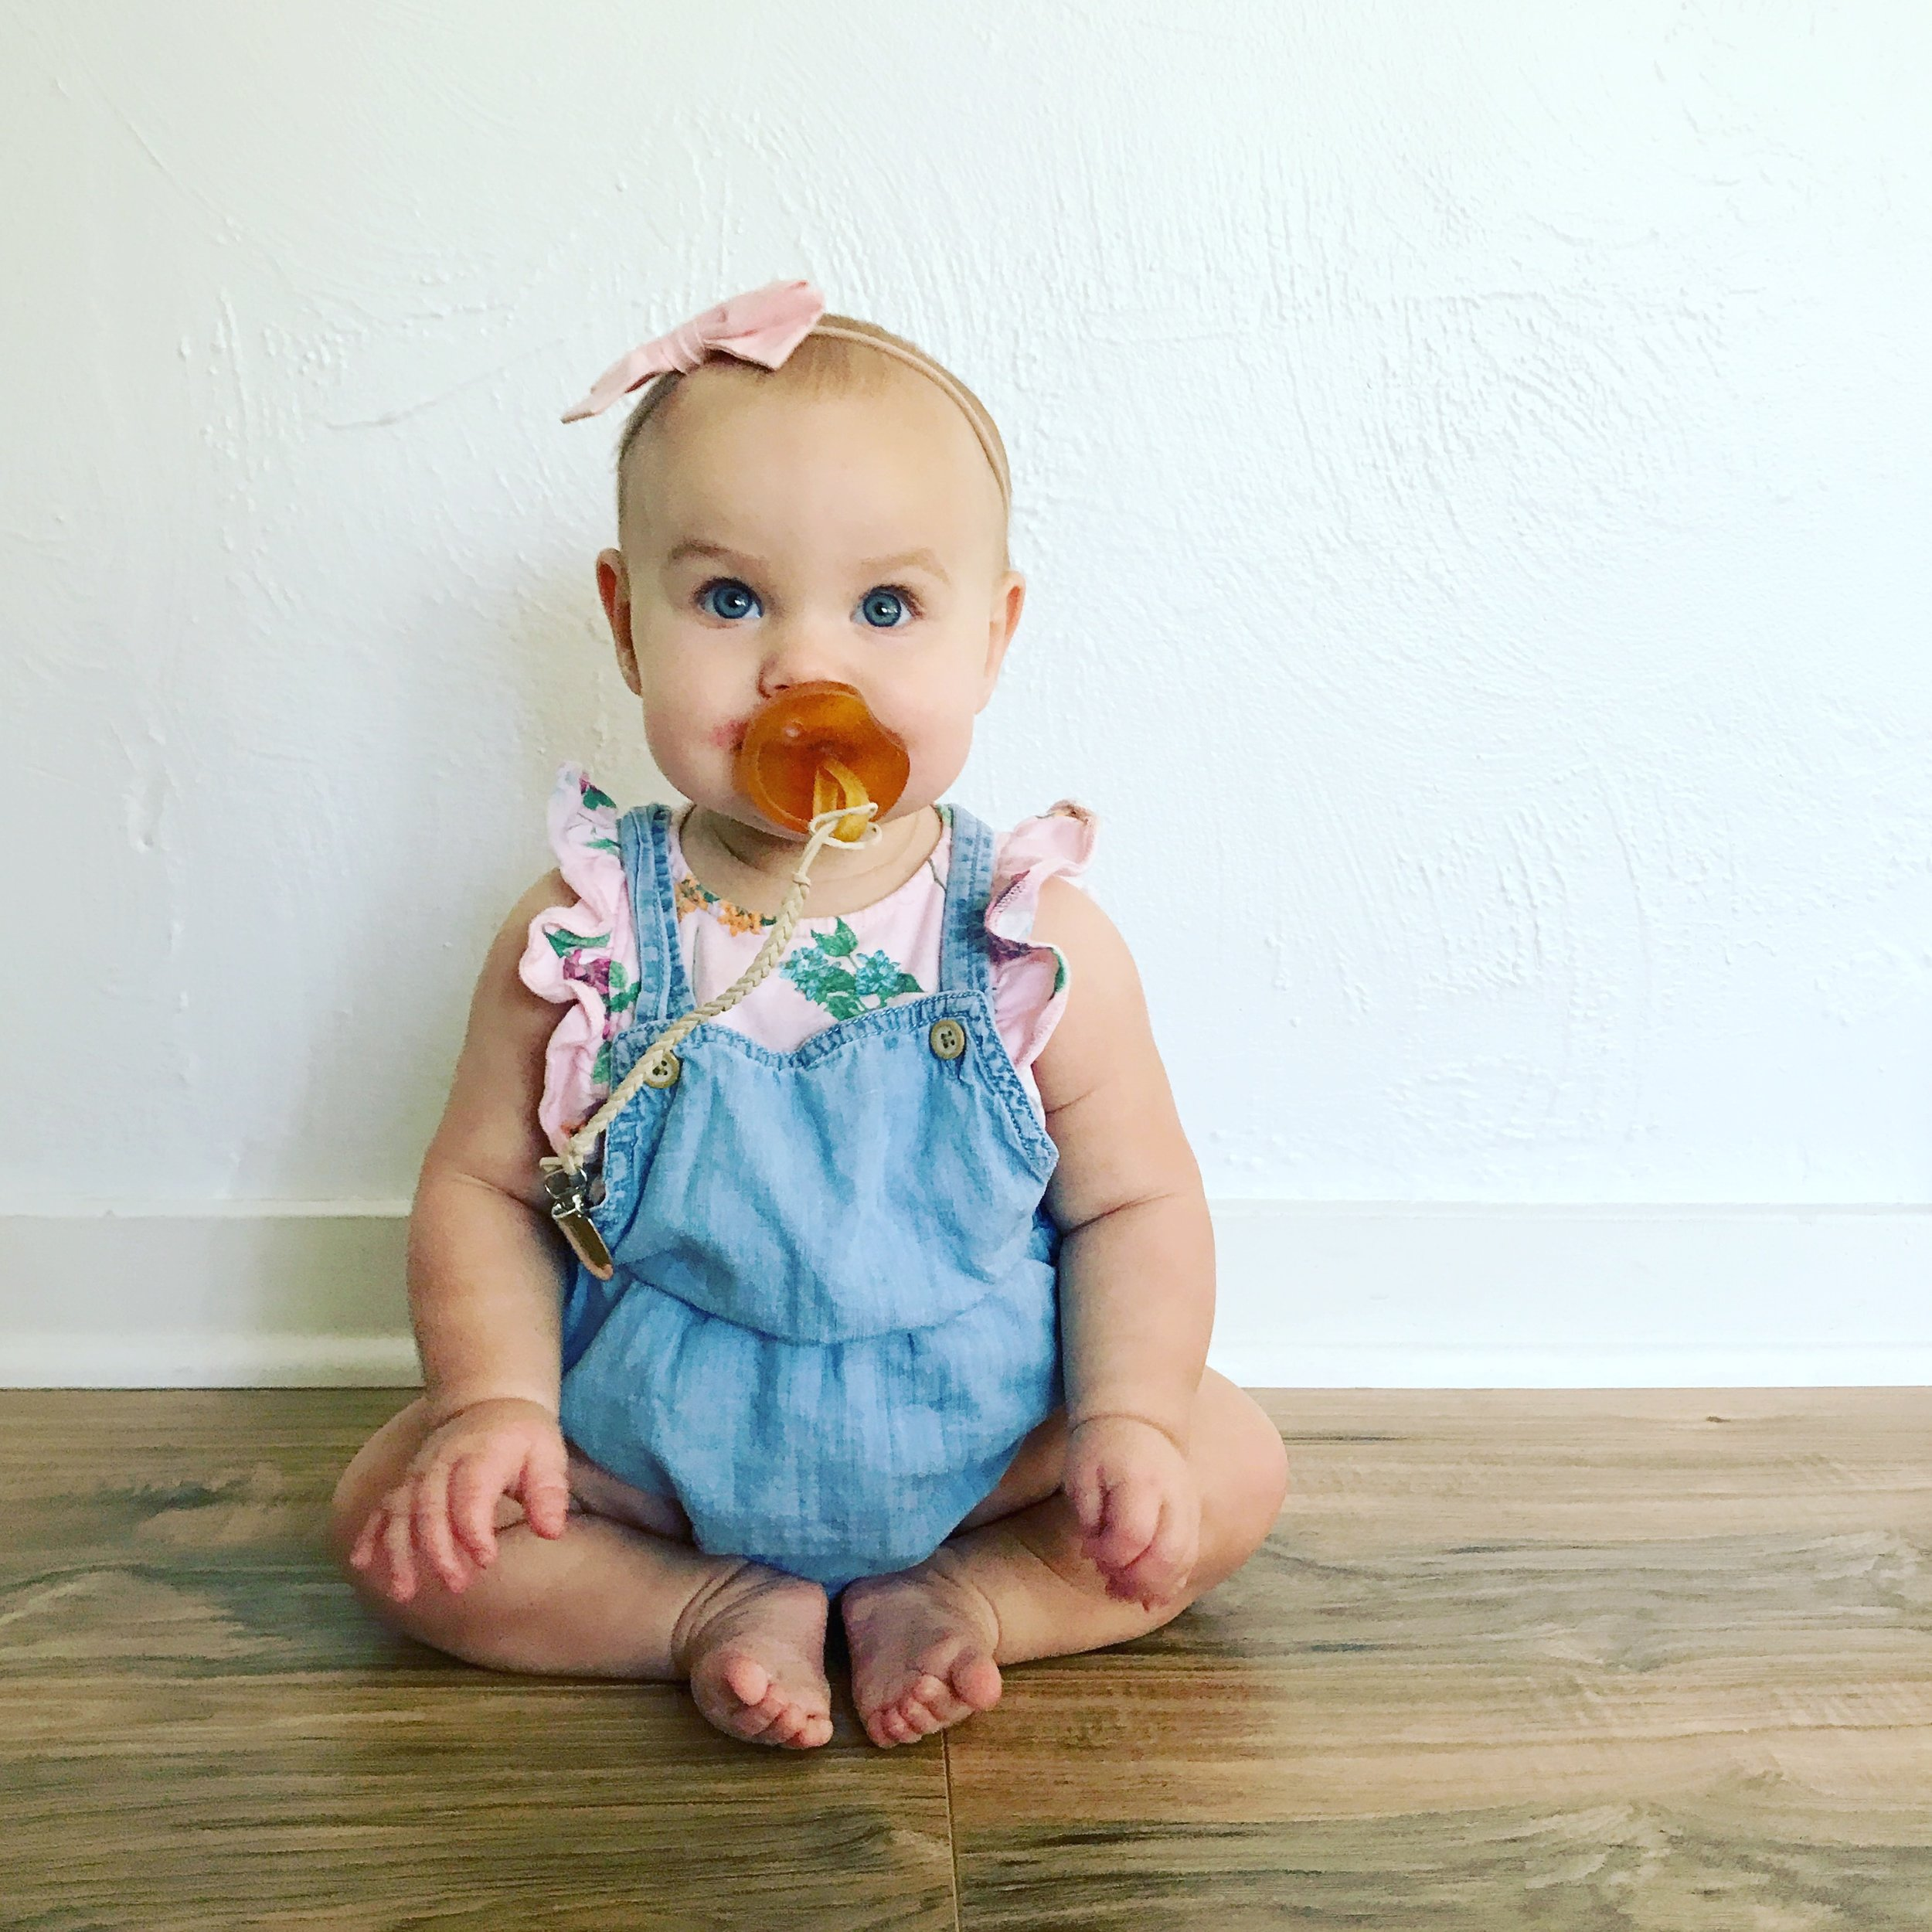 Overalls from gap and bubble romper underneath from Old Navy; bow from Happily Hadley Handmade